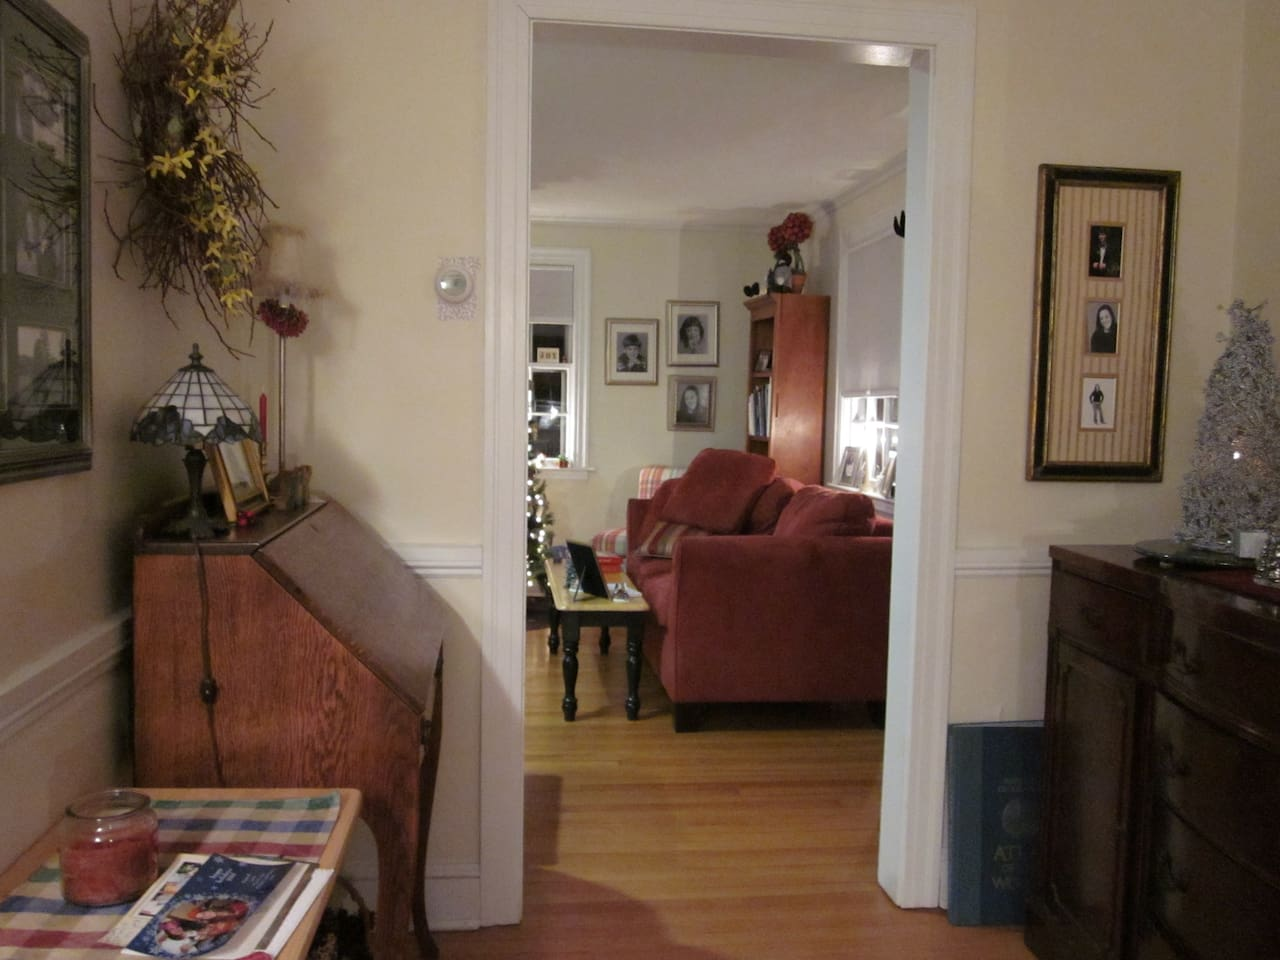 west hartford hideaway houses for rent in west hartford west hartford hideaway houses for rent in west hartford connecticut united states